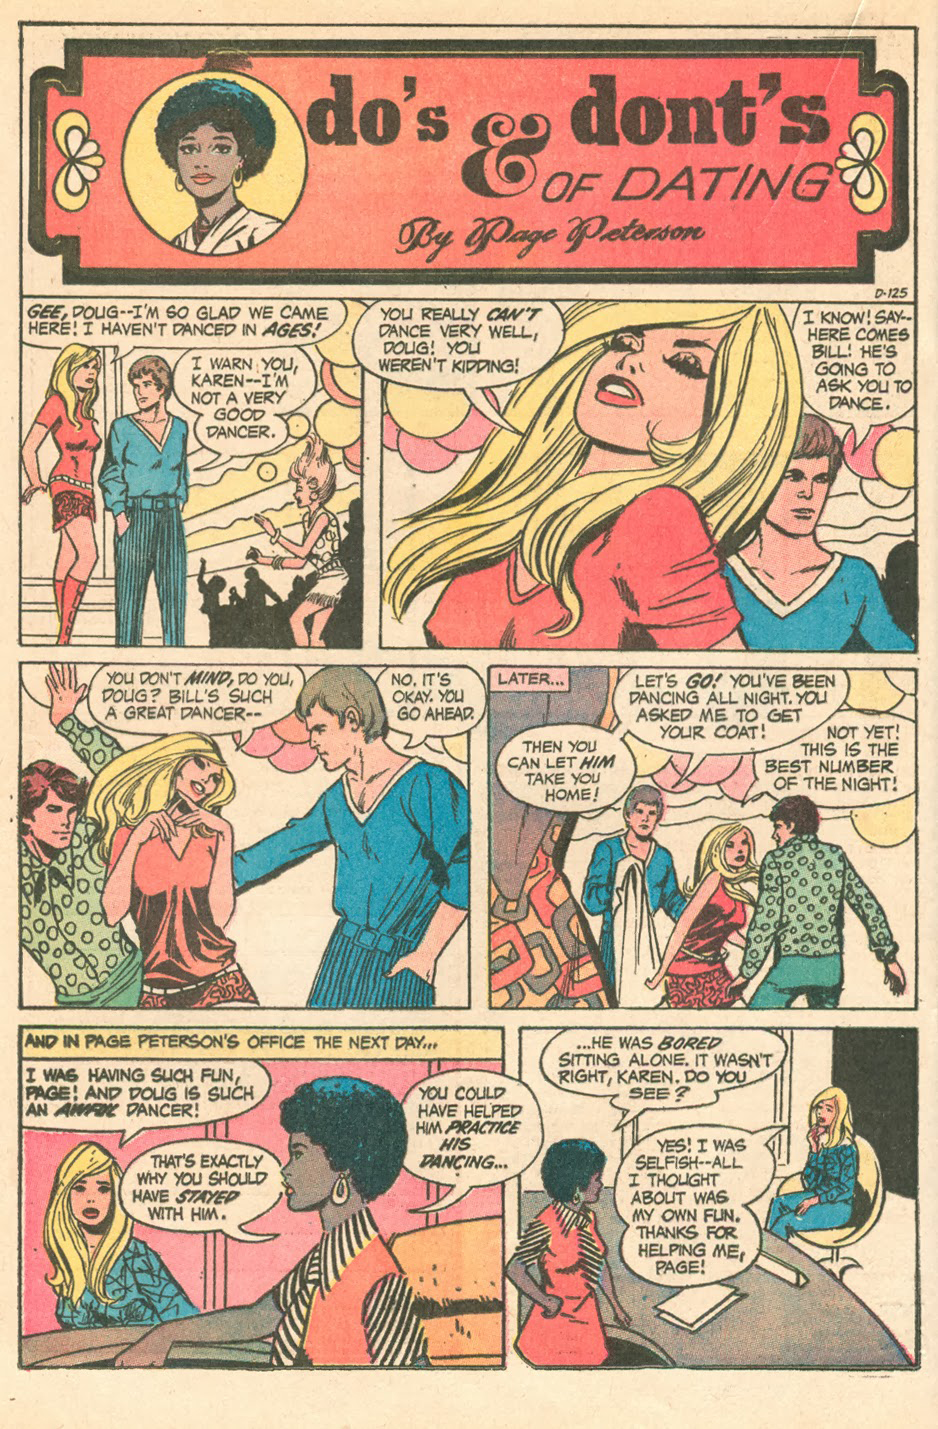 """Do's & Dont's of Dating by Page Peterson""  Young Romance  #174 (September 1971) Pencils by Steve Englehart"